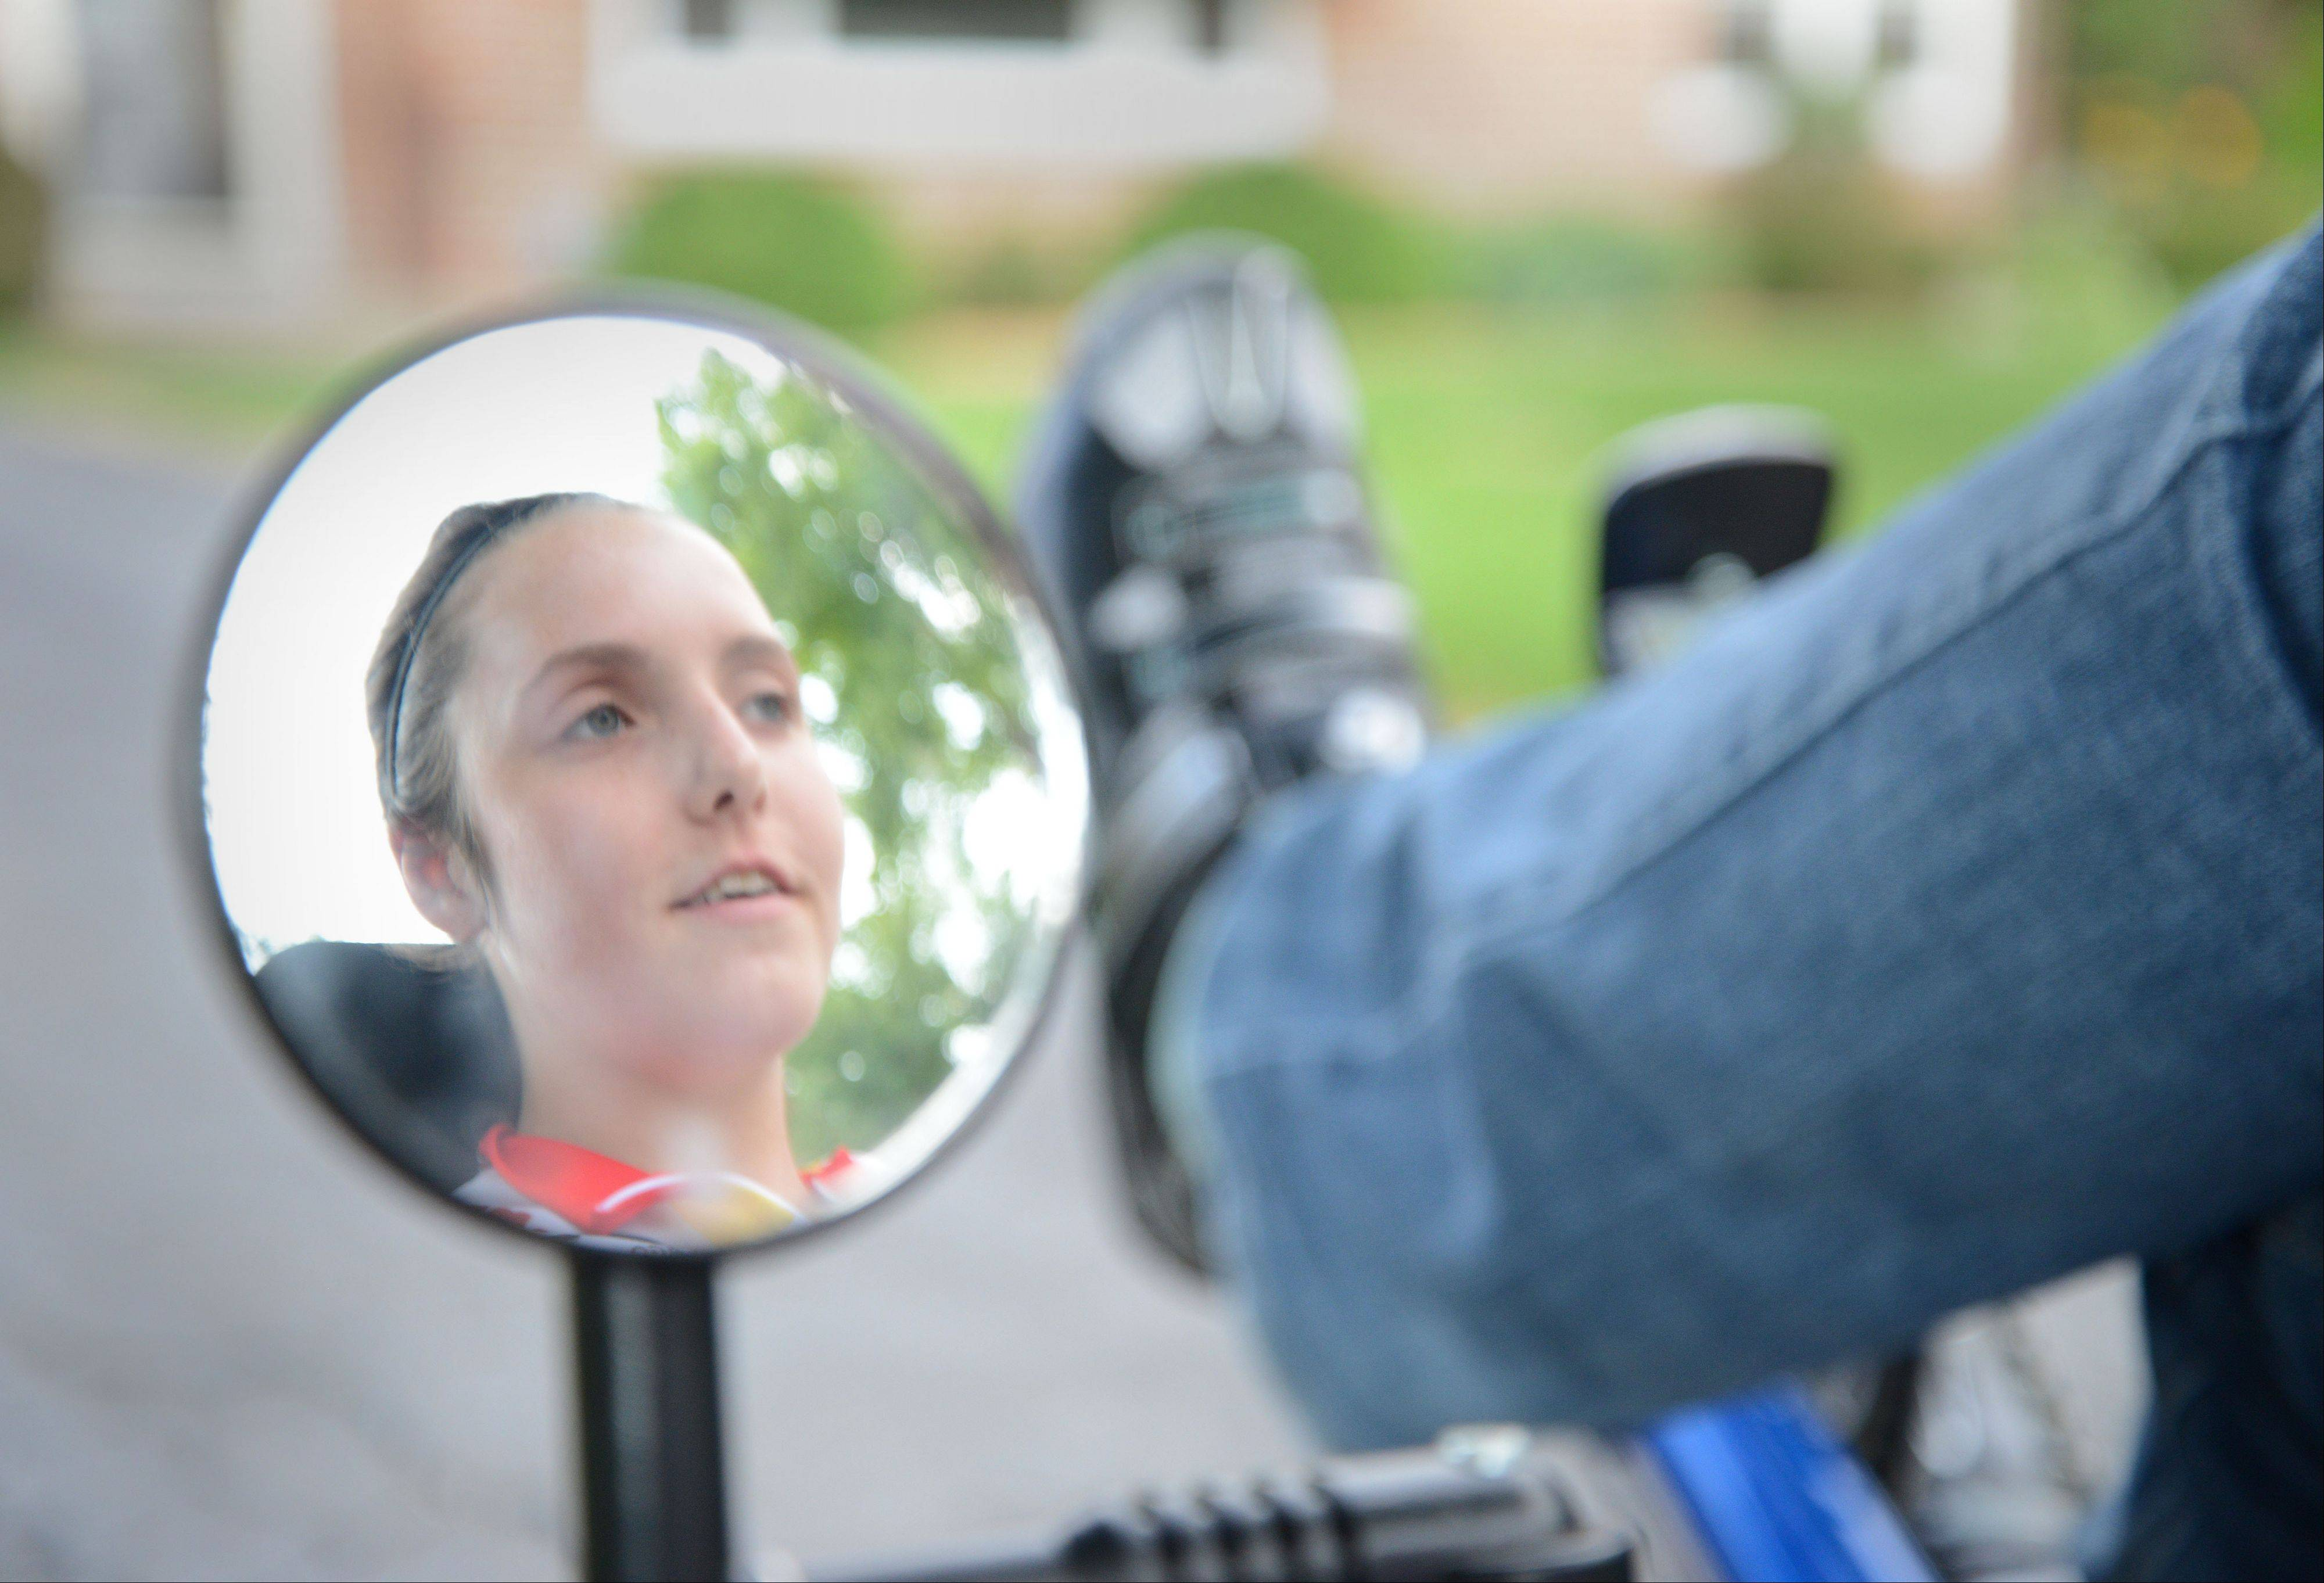 Diagnosed with an untreatable, incurable deadly disease that weakens her muscles and keeps her from playing all the sports she loved as a girl, 19-year-old Nicole Kramer of Villa Park won a custom three-wheel cycle that allows her to bike.